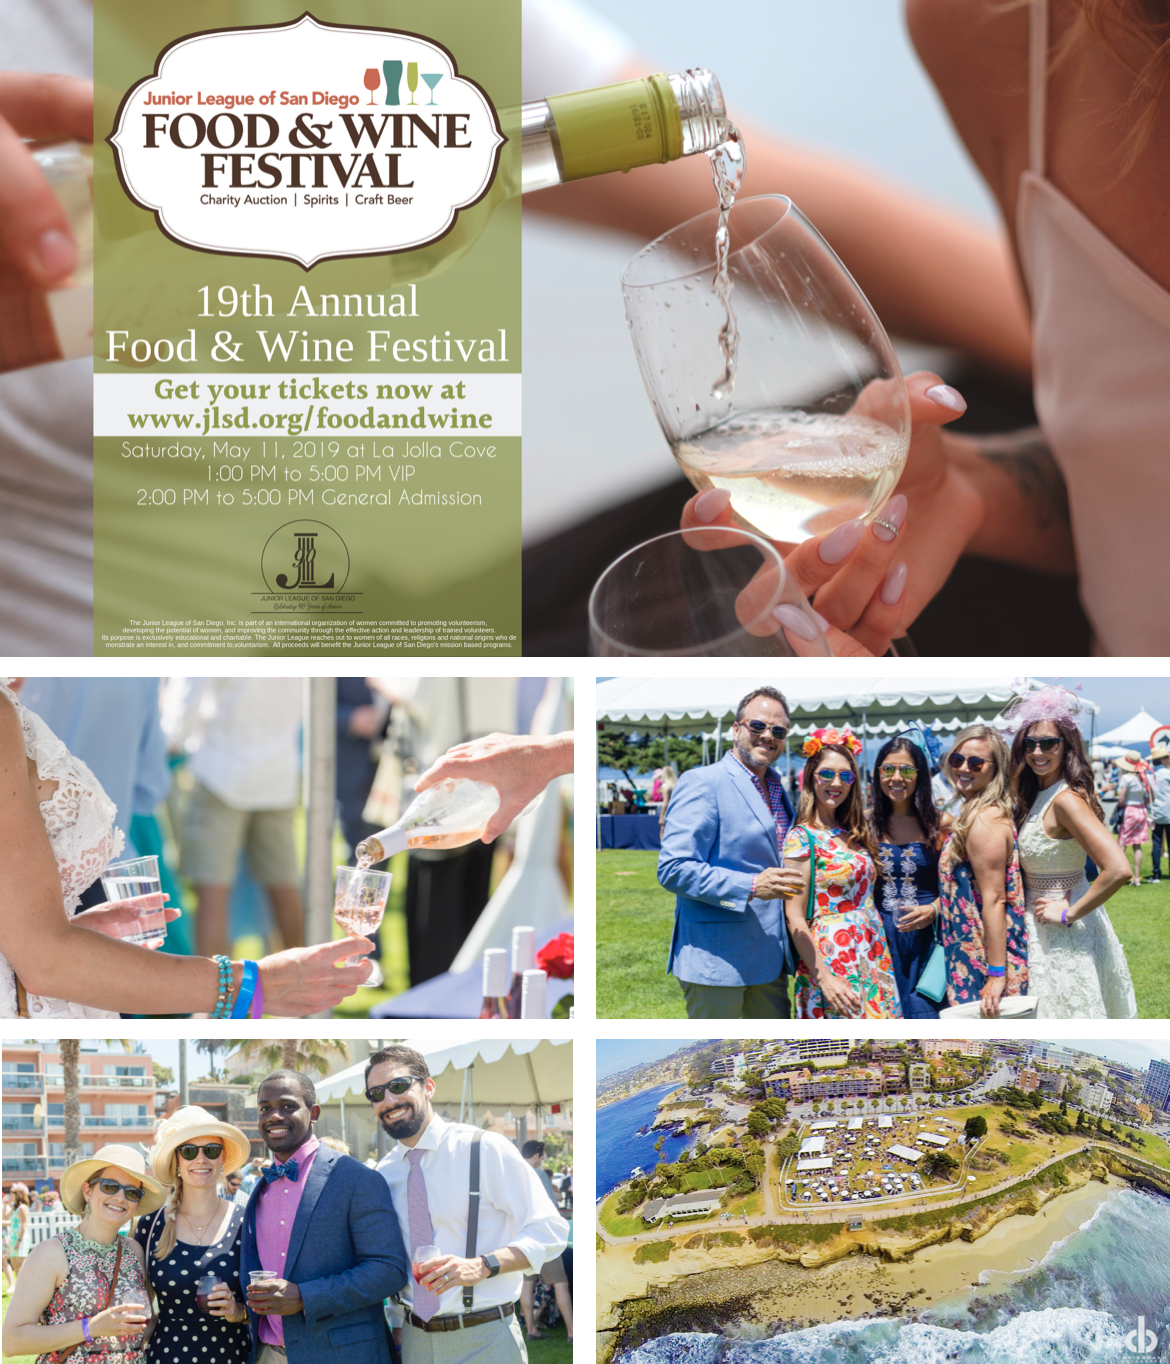 Promo code SDVILLE saves $5 per ticket to the Junior League of San Diego Food & Wine Festival!